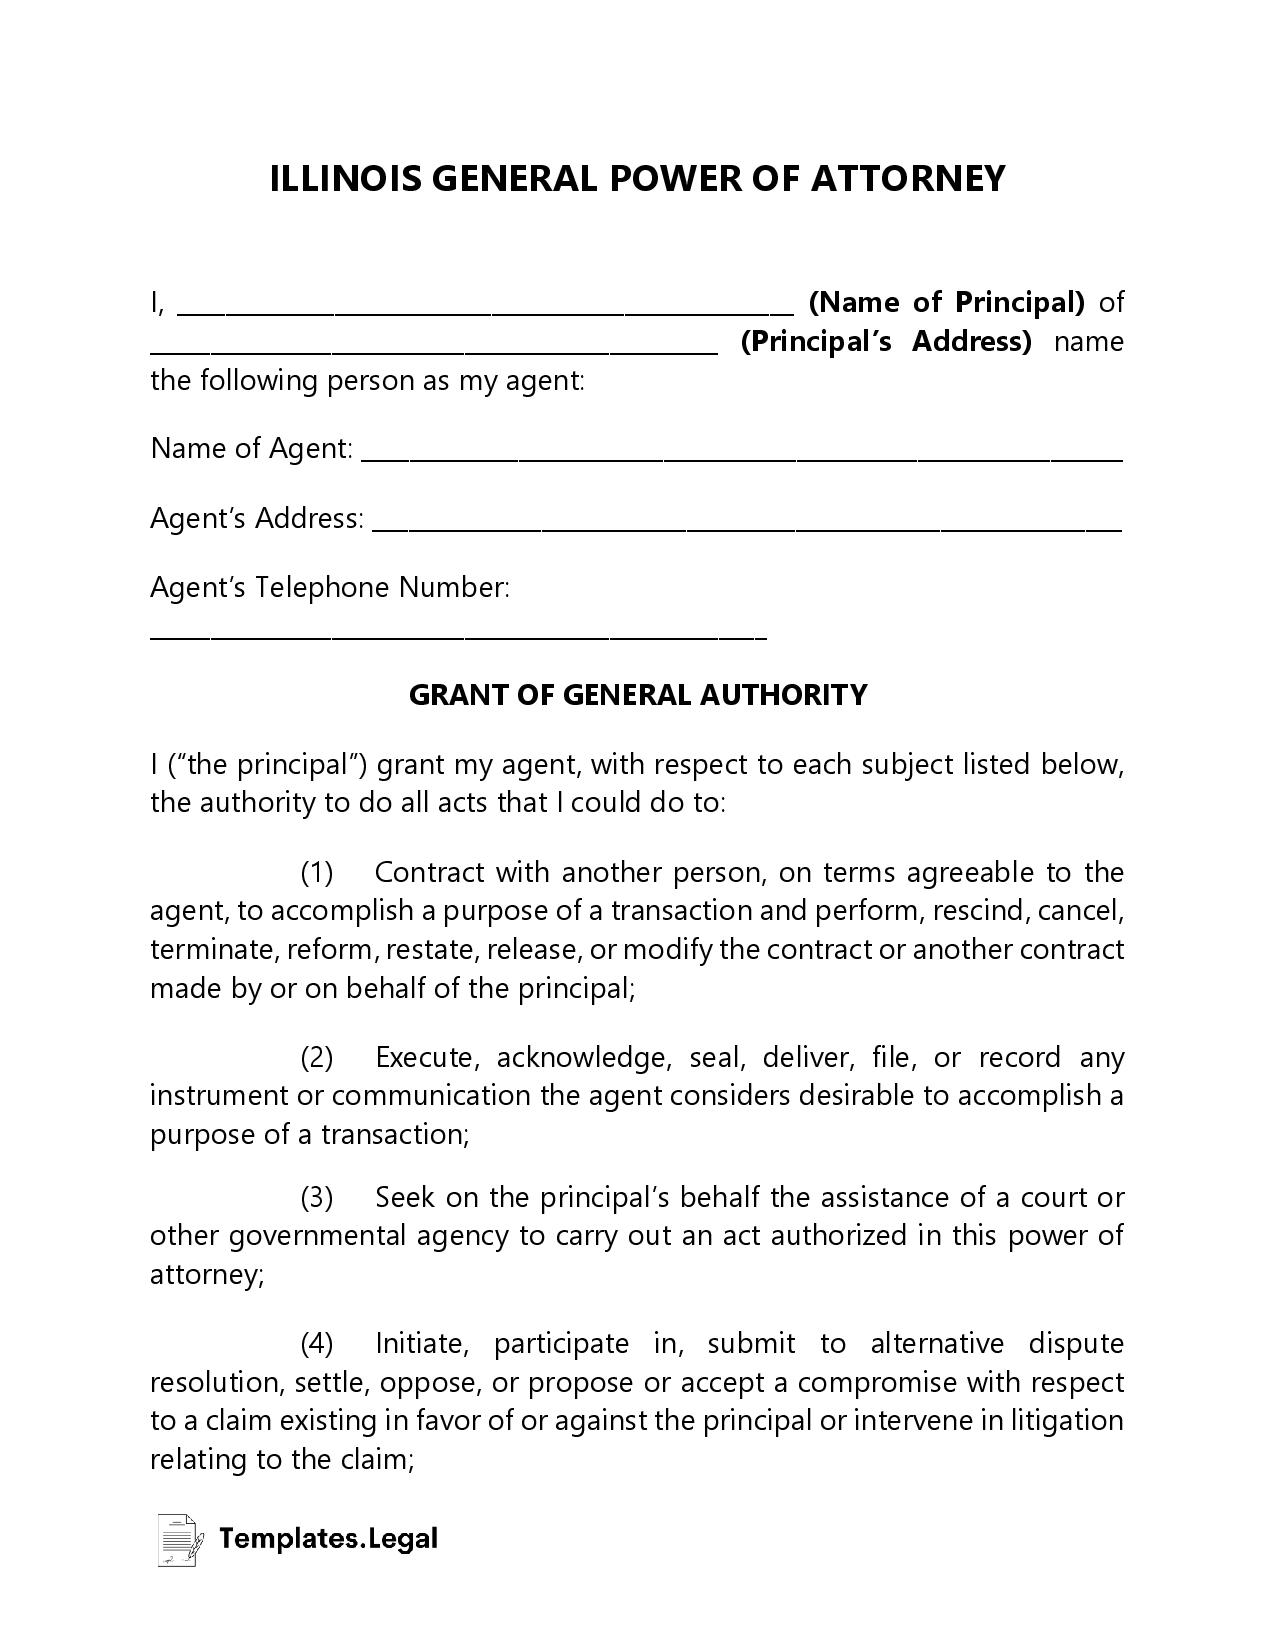 Illinois General Power of Attorney - Templates.Legal